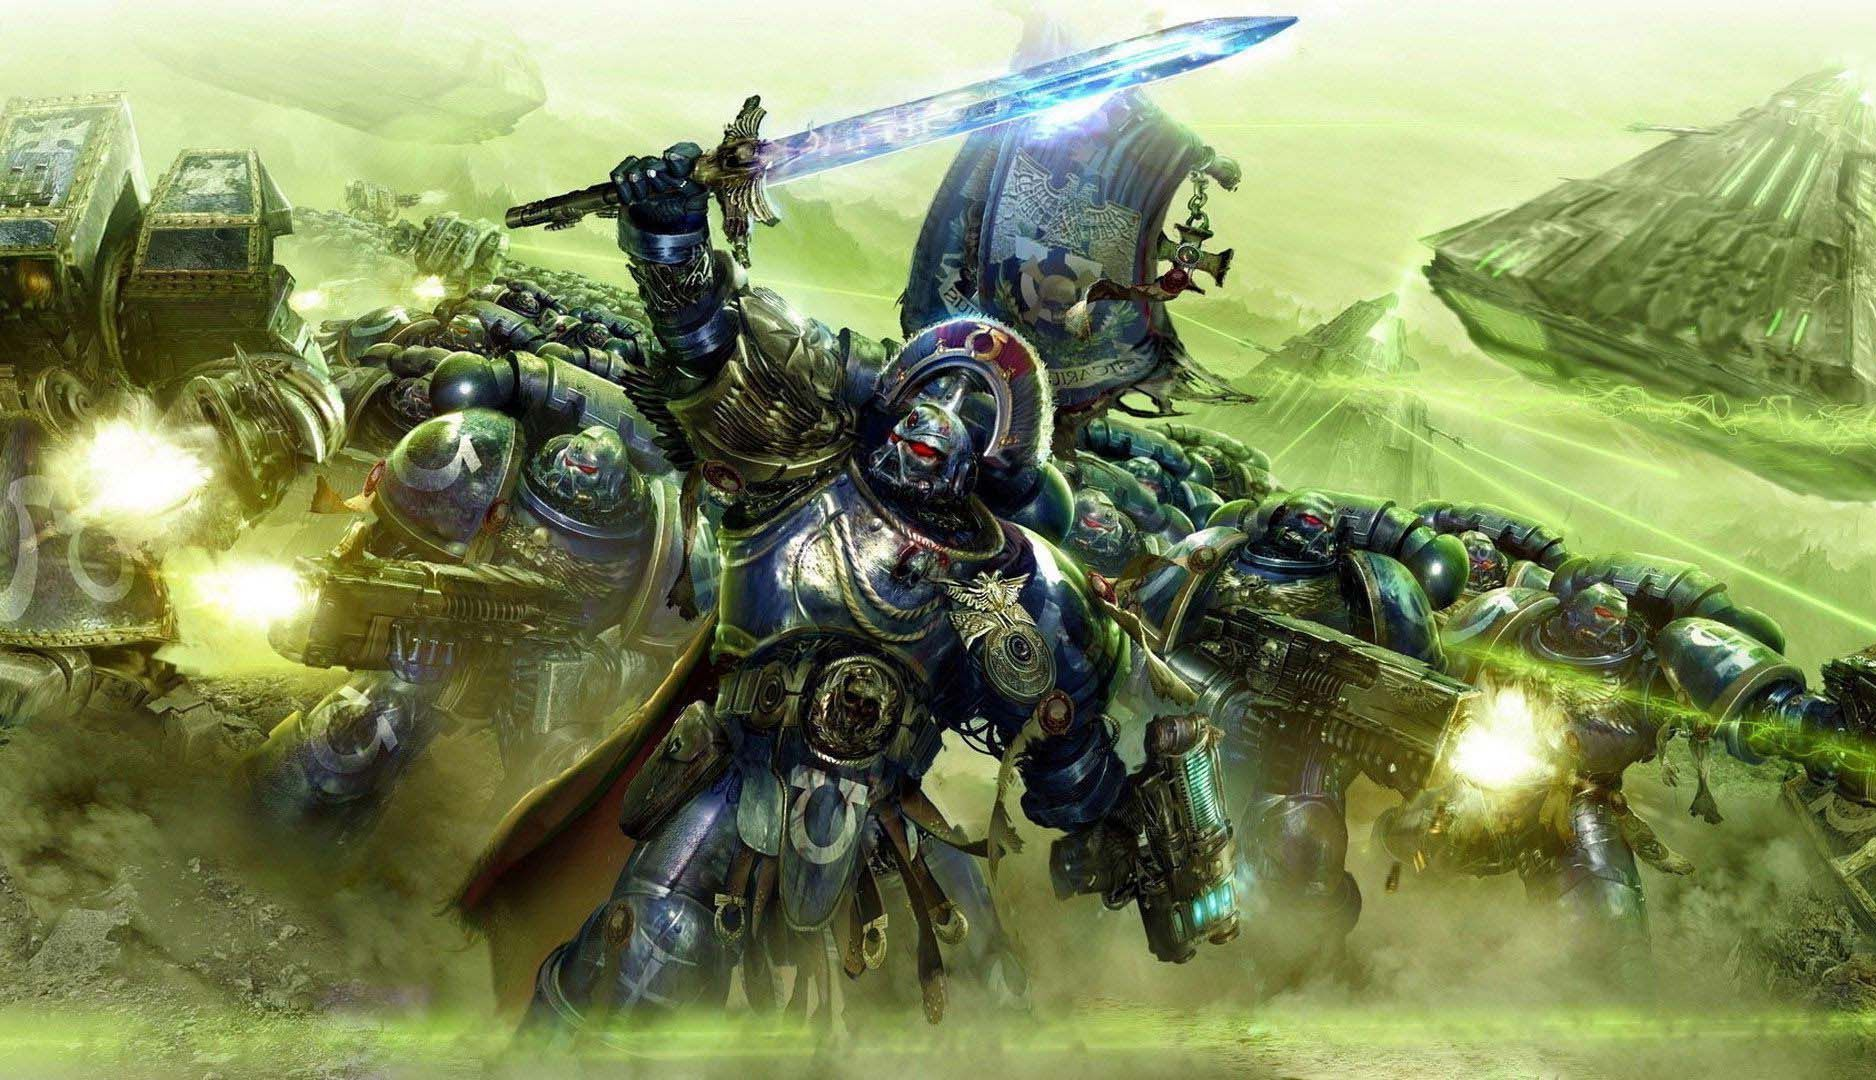 warhammer 40k-ultramarines artist unknown | Warhammer 40k